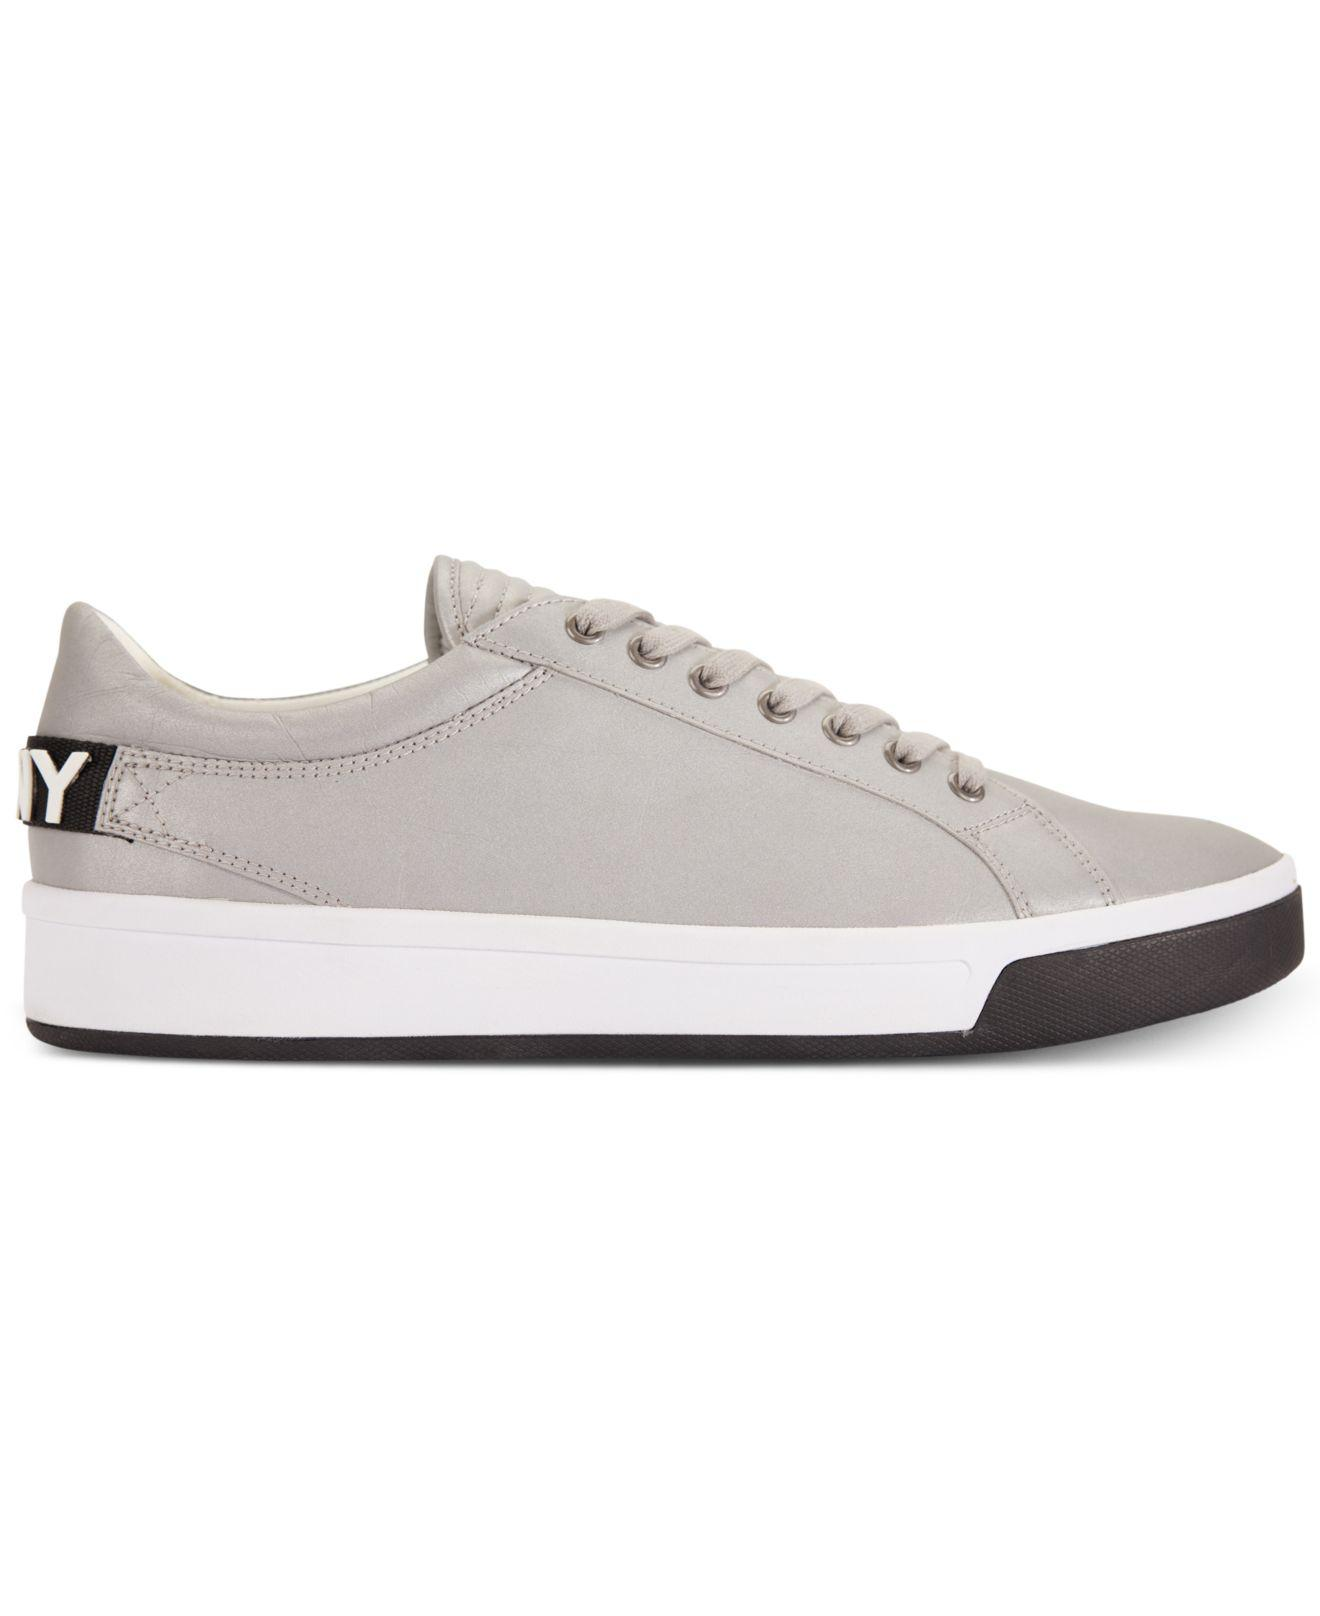 DKNY Leather Samson Lace-up Sneakers